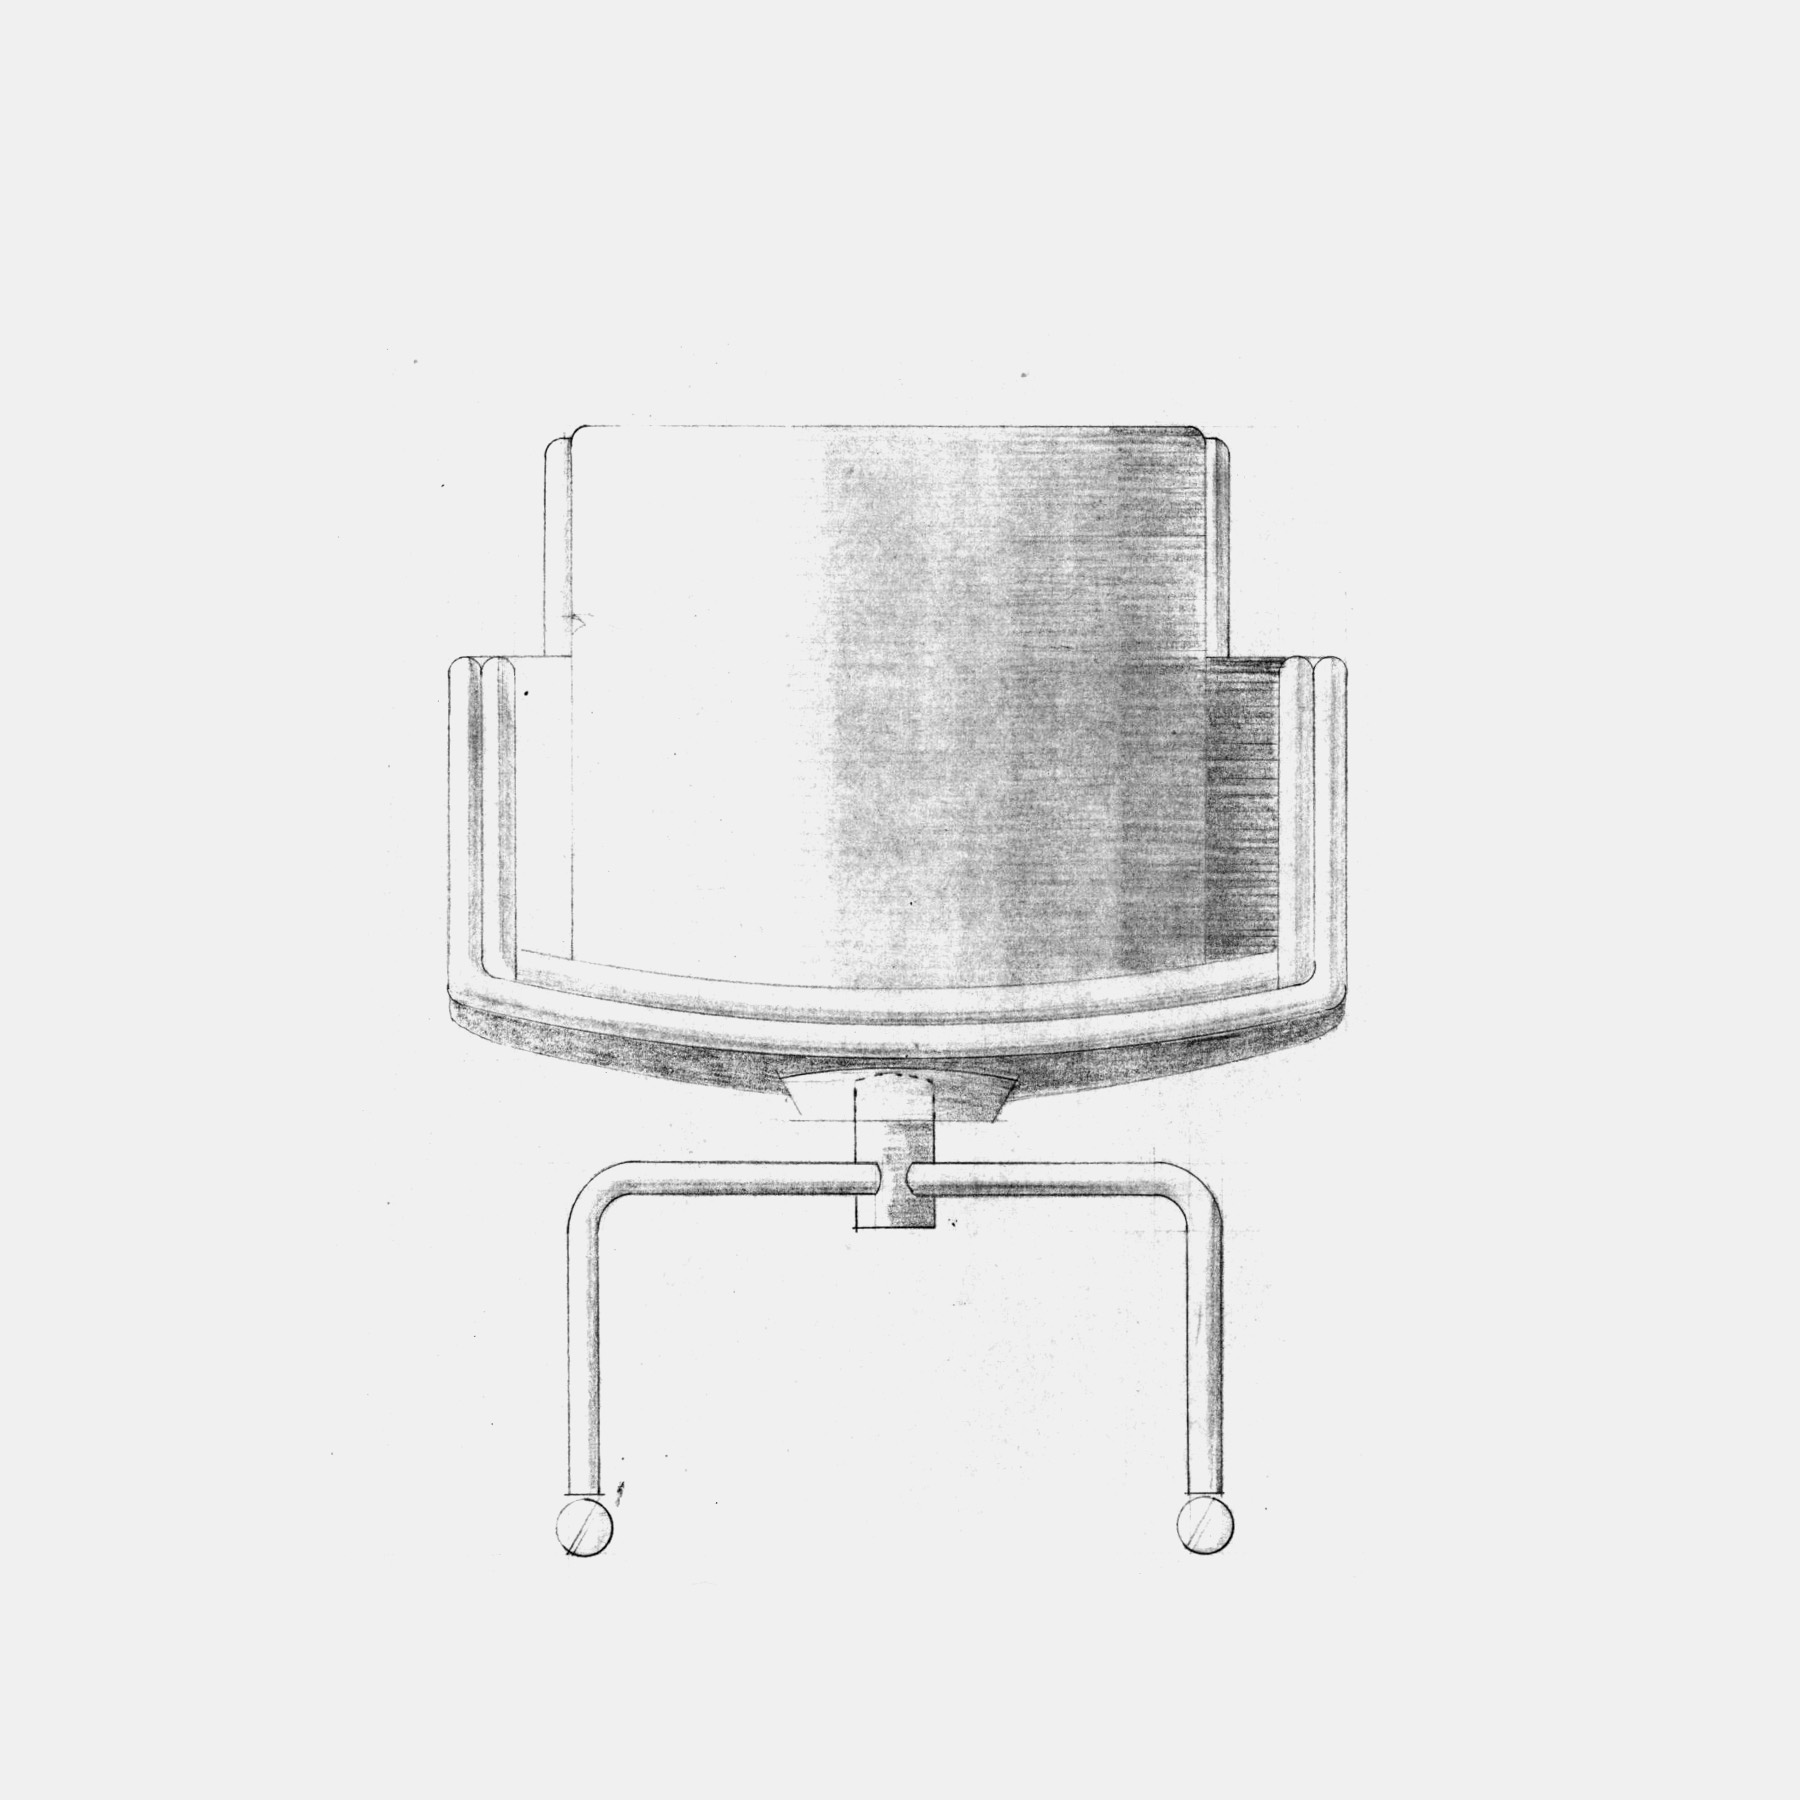 BodilKjaer_ConferenceChair_Packshot